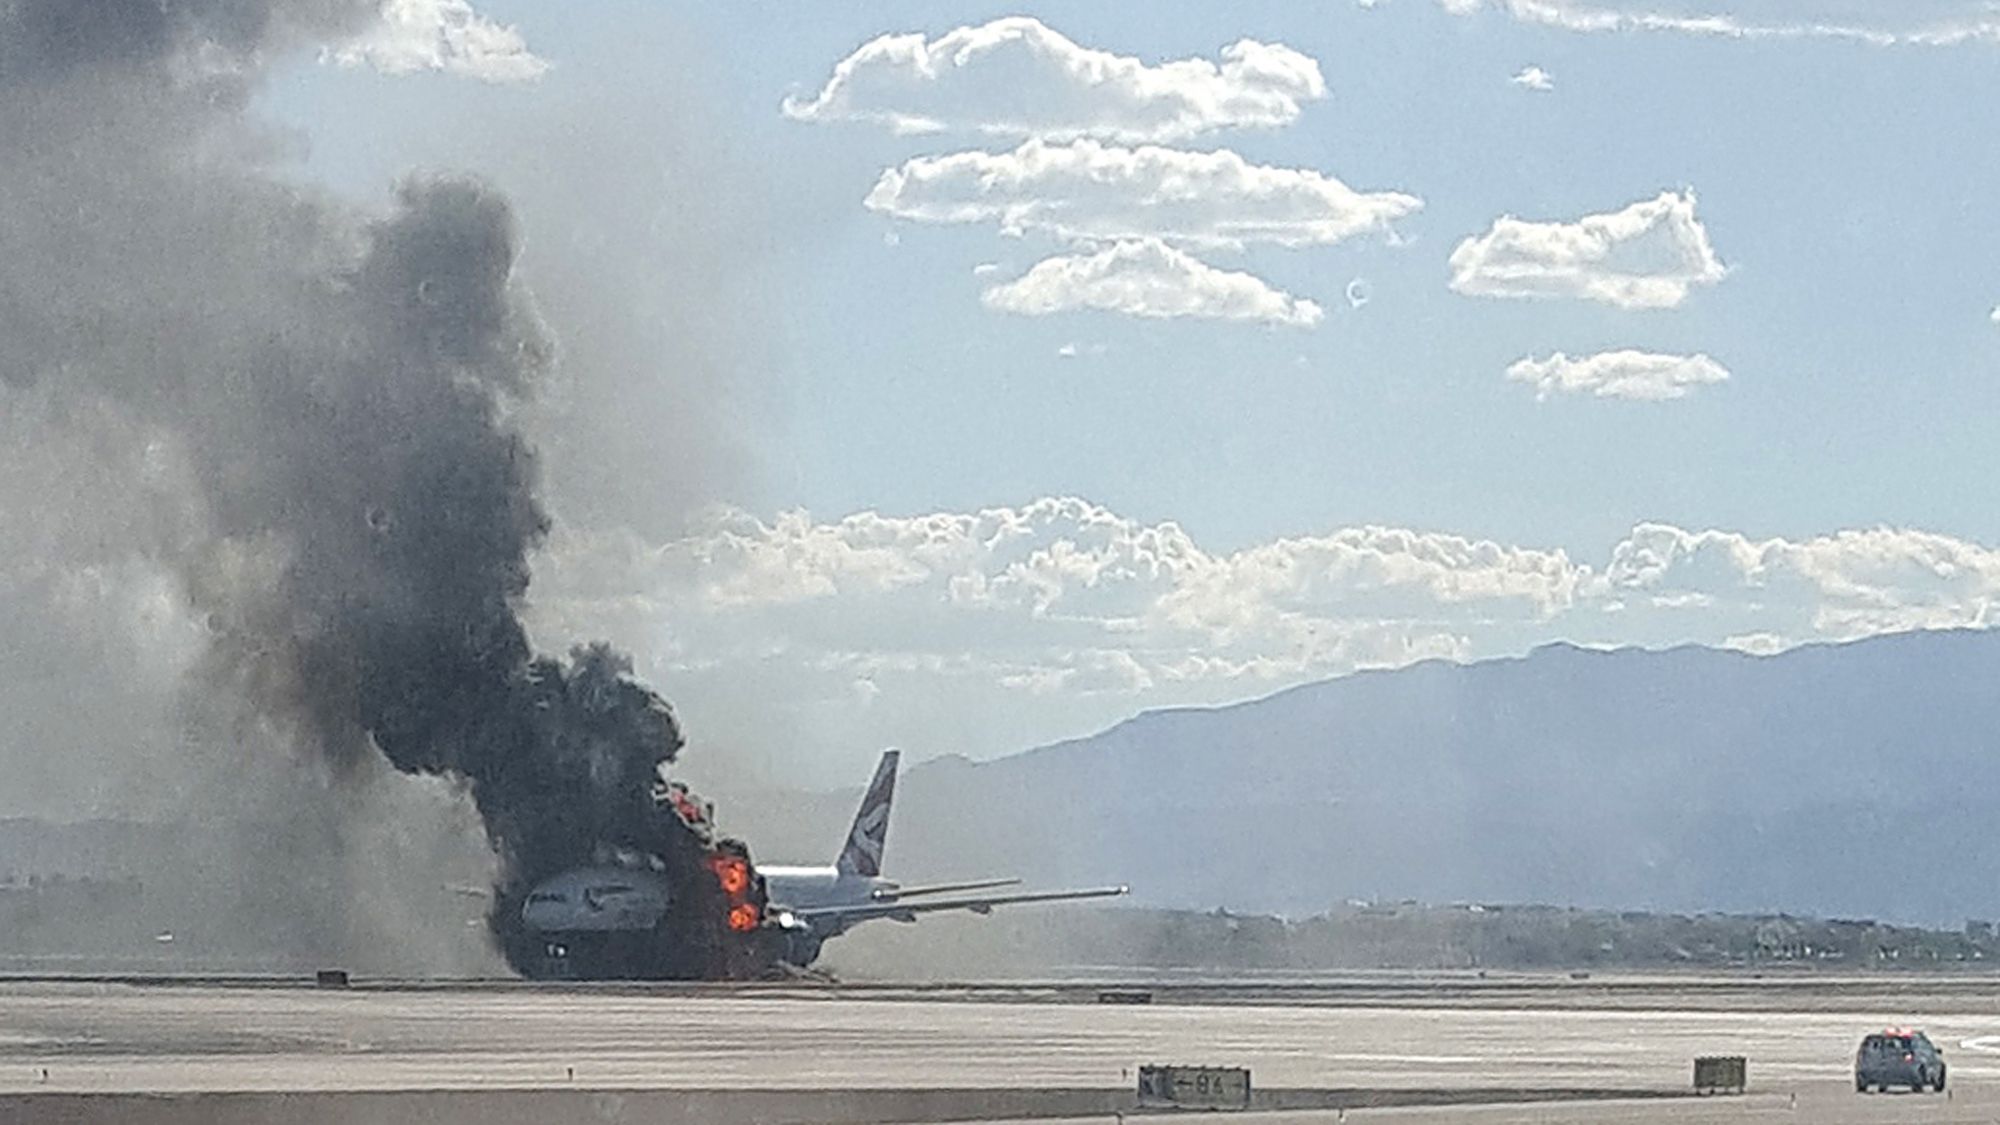 In this photo taken from the view of a plane window, smoke billows out from a plane that caught fire at McCarren International Airport, Tuesday, Sept. 8, 2015, in Las Vegas. An engine on the British Airways plane caught fire before takeoff, forcing passengers to escape on emergency slides.